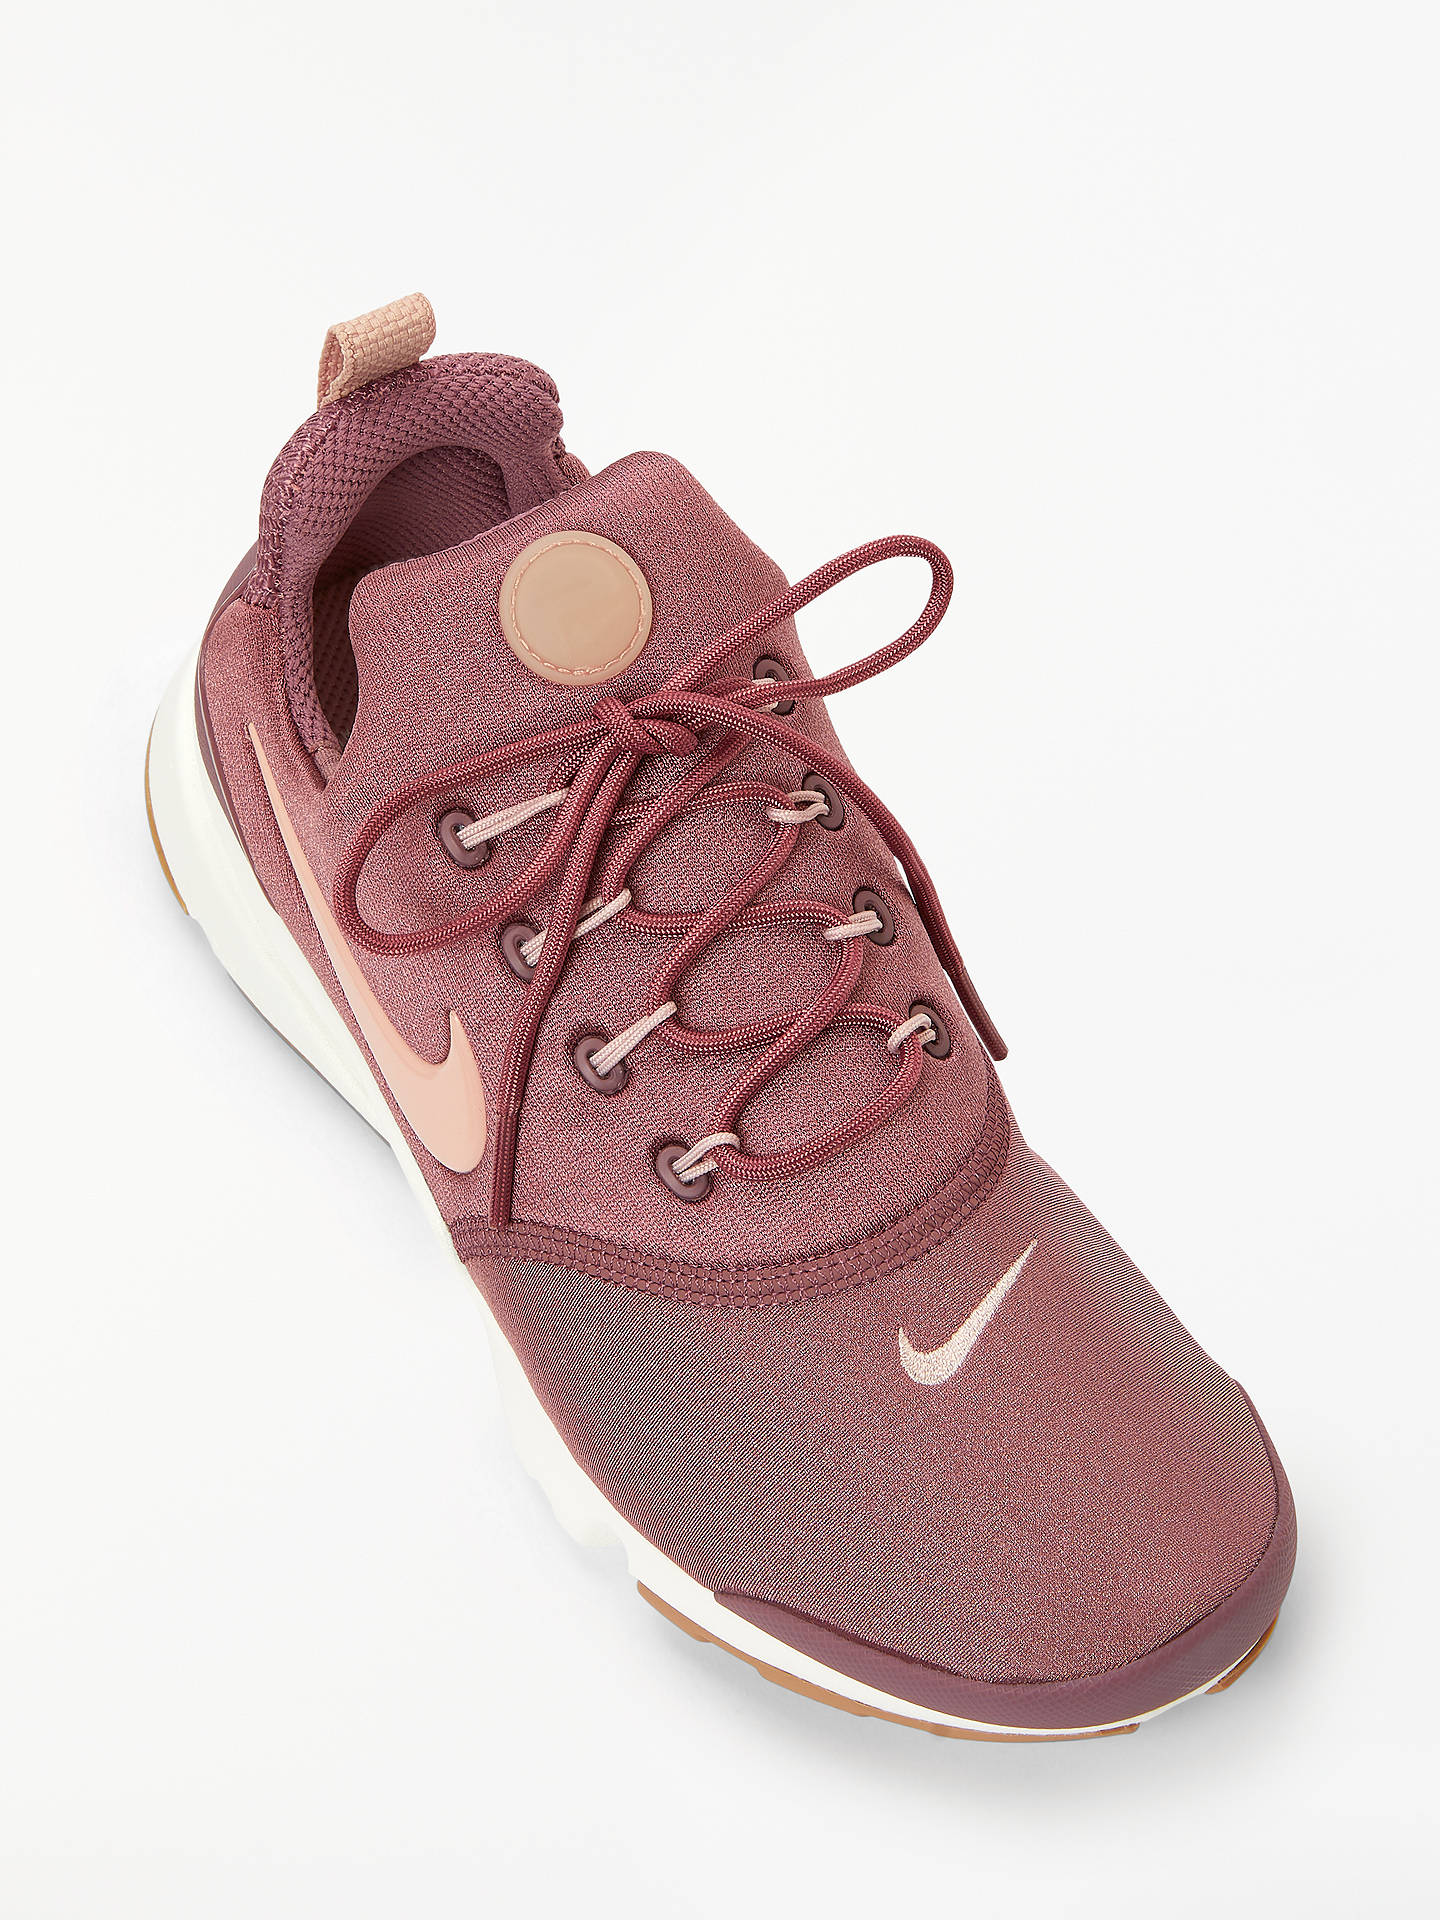 quality design db164 ca020 Nike Presto Fly Women's Trainers, Smokey Mauve/Particle Beige